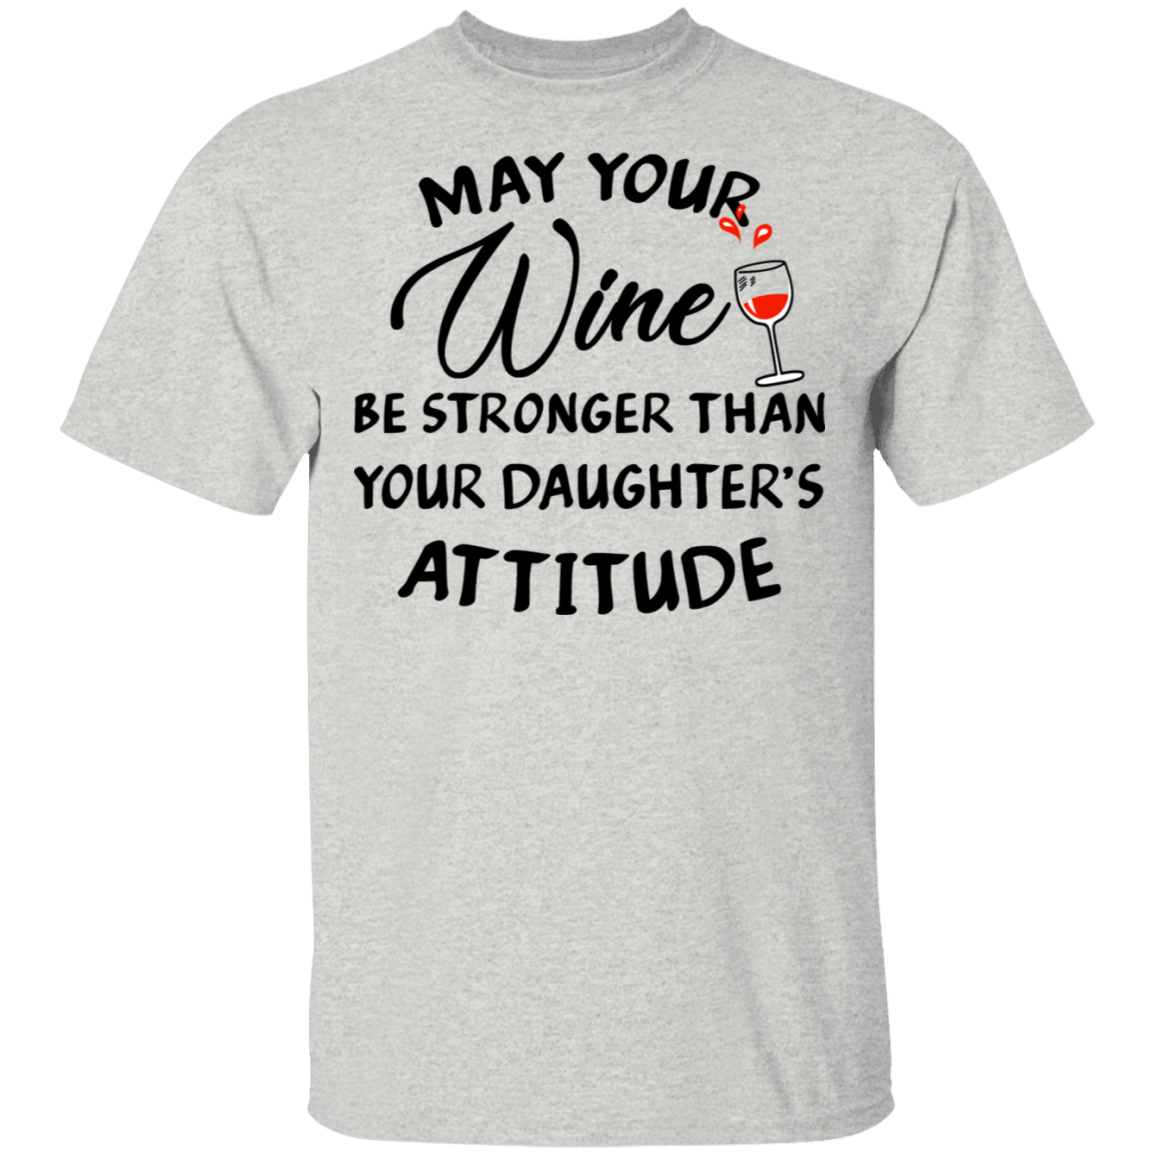 May Your Wine Be Stronger Than Your Daughter's Attitude T-Shirts, Hoodies, Tank 22-2475-79820339-12568 - Tee Ript